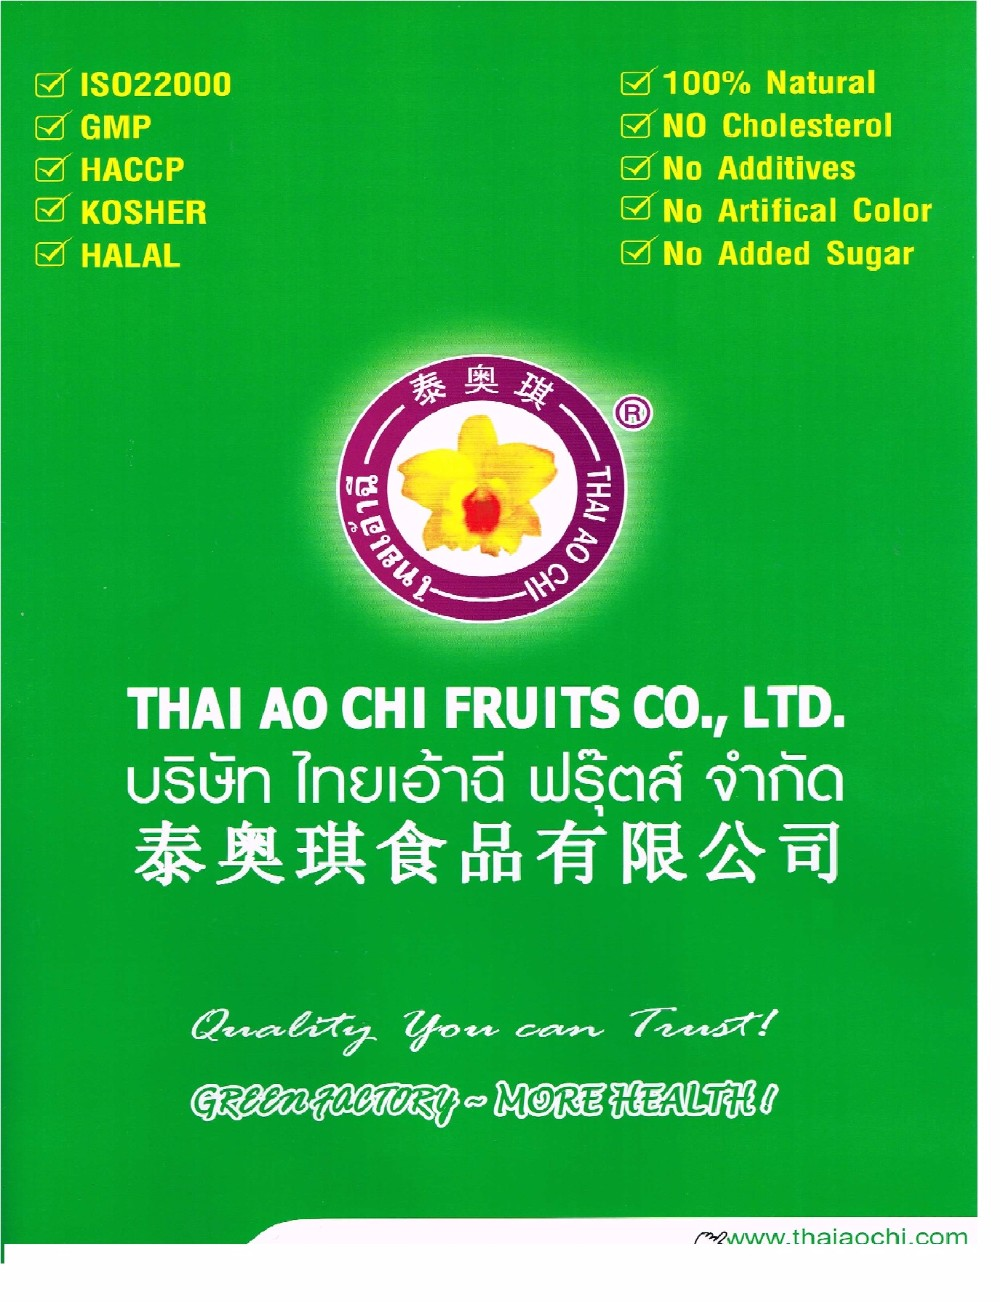 IQF Pineapple pieces from Thailand [ Thai Ao Chi Fruits ]